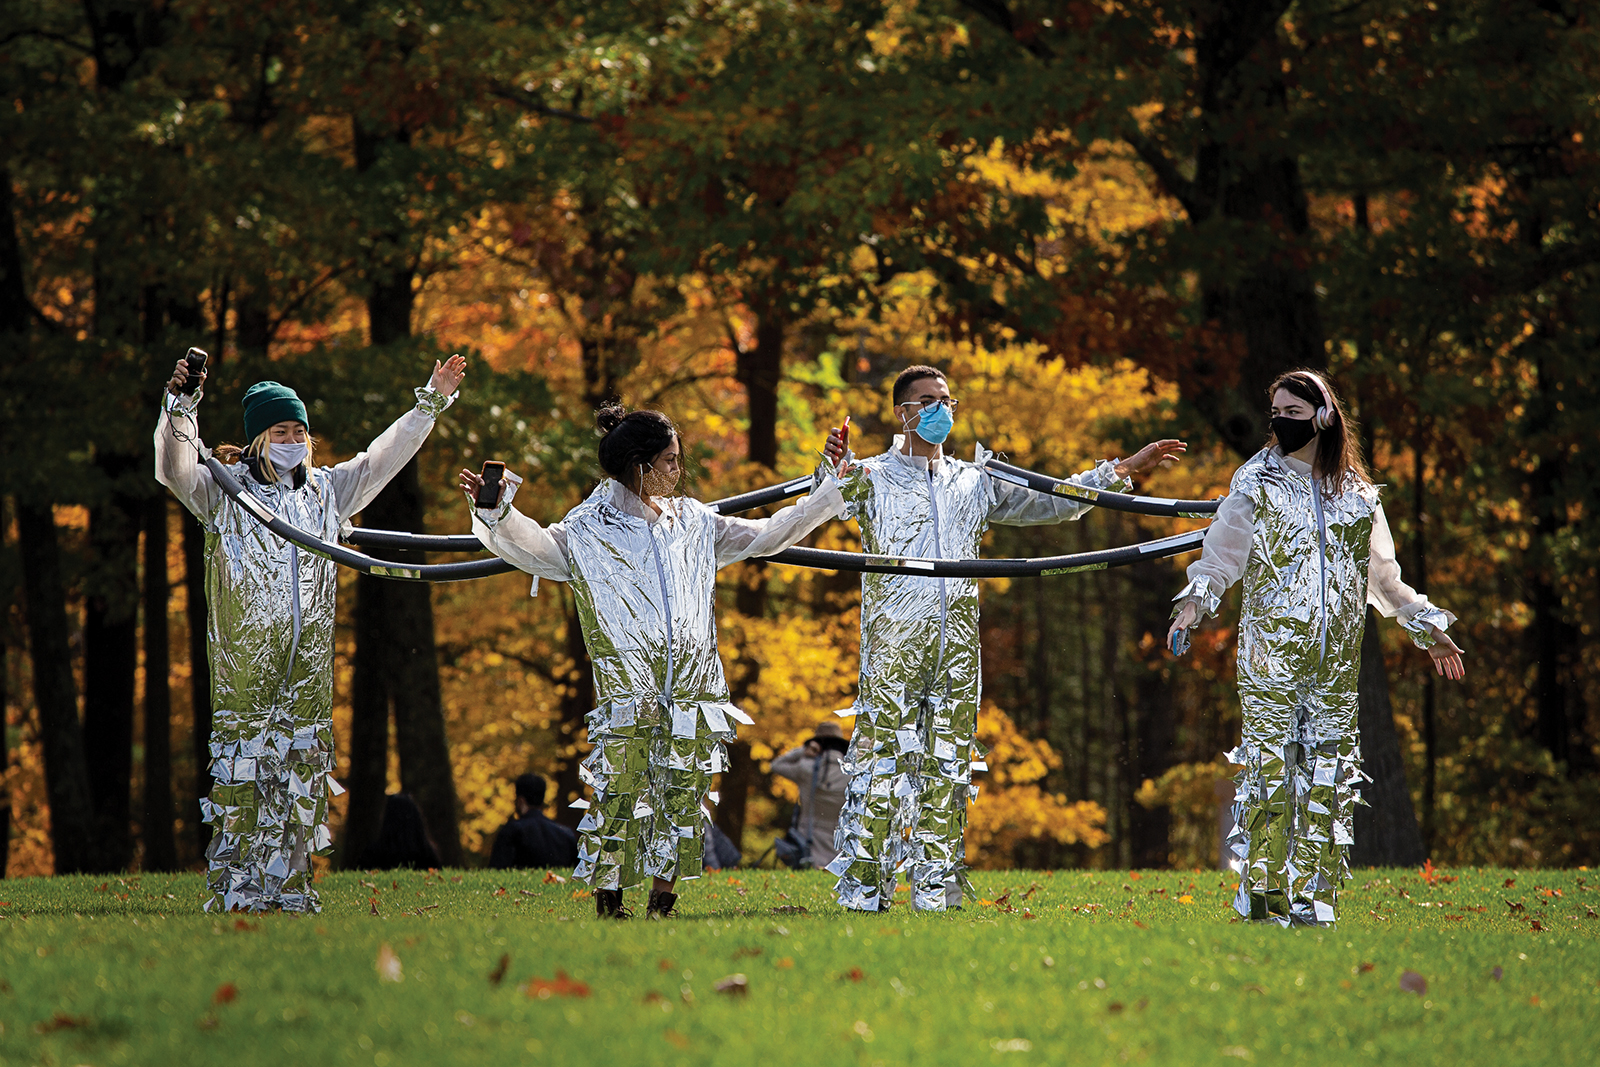 For an event at The Clark Art Institute in October, students taking the two courses Sound and Sculpture exhibit safe-distancing apparatuses and sound works that depict walking in nature during a pandemic.